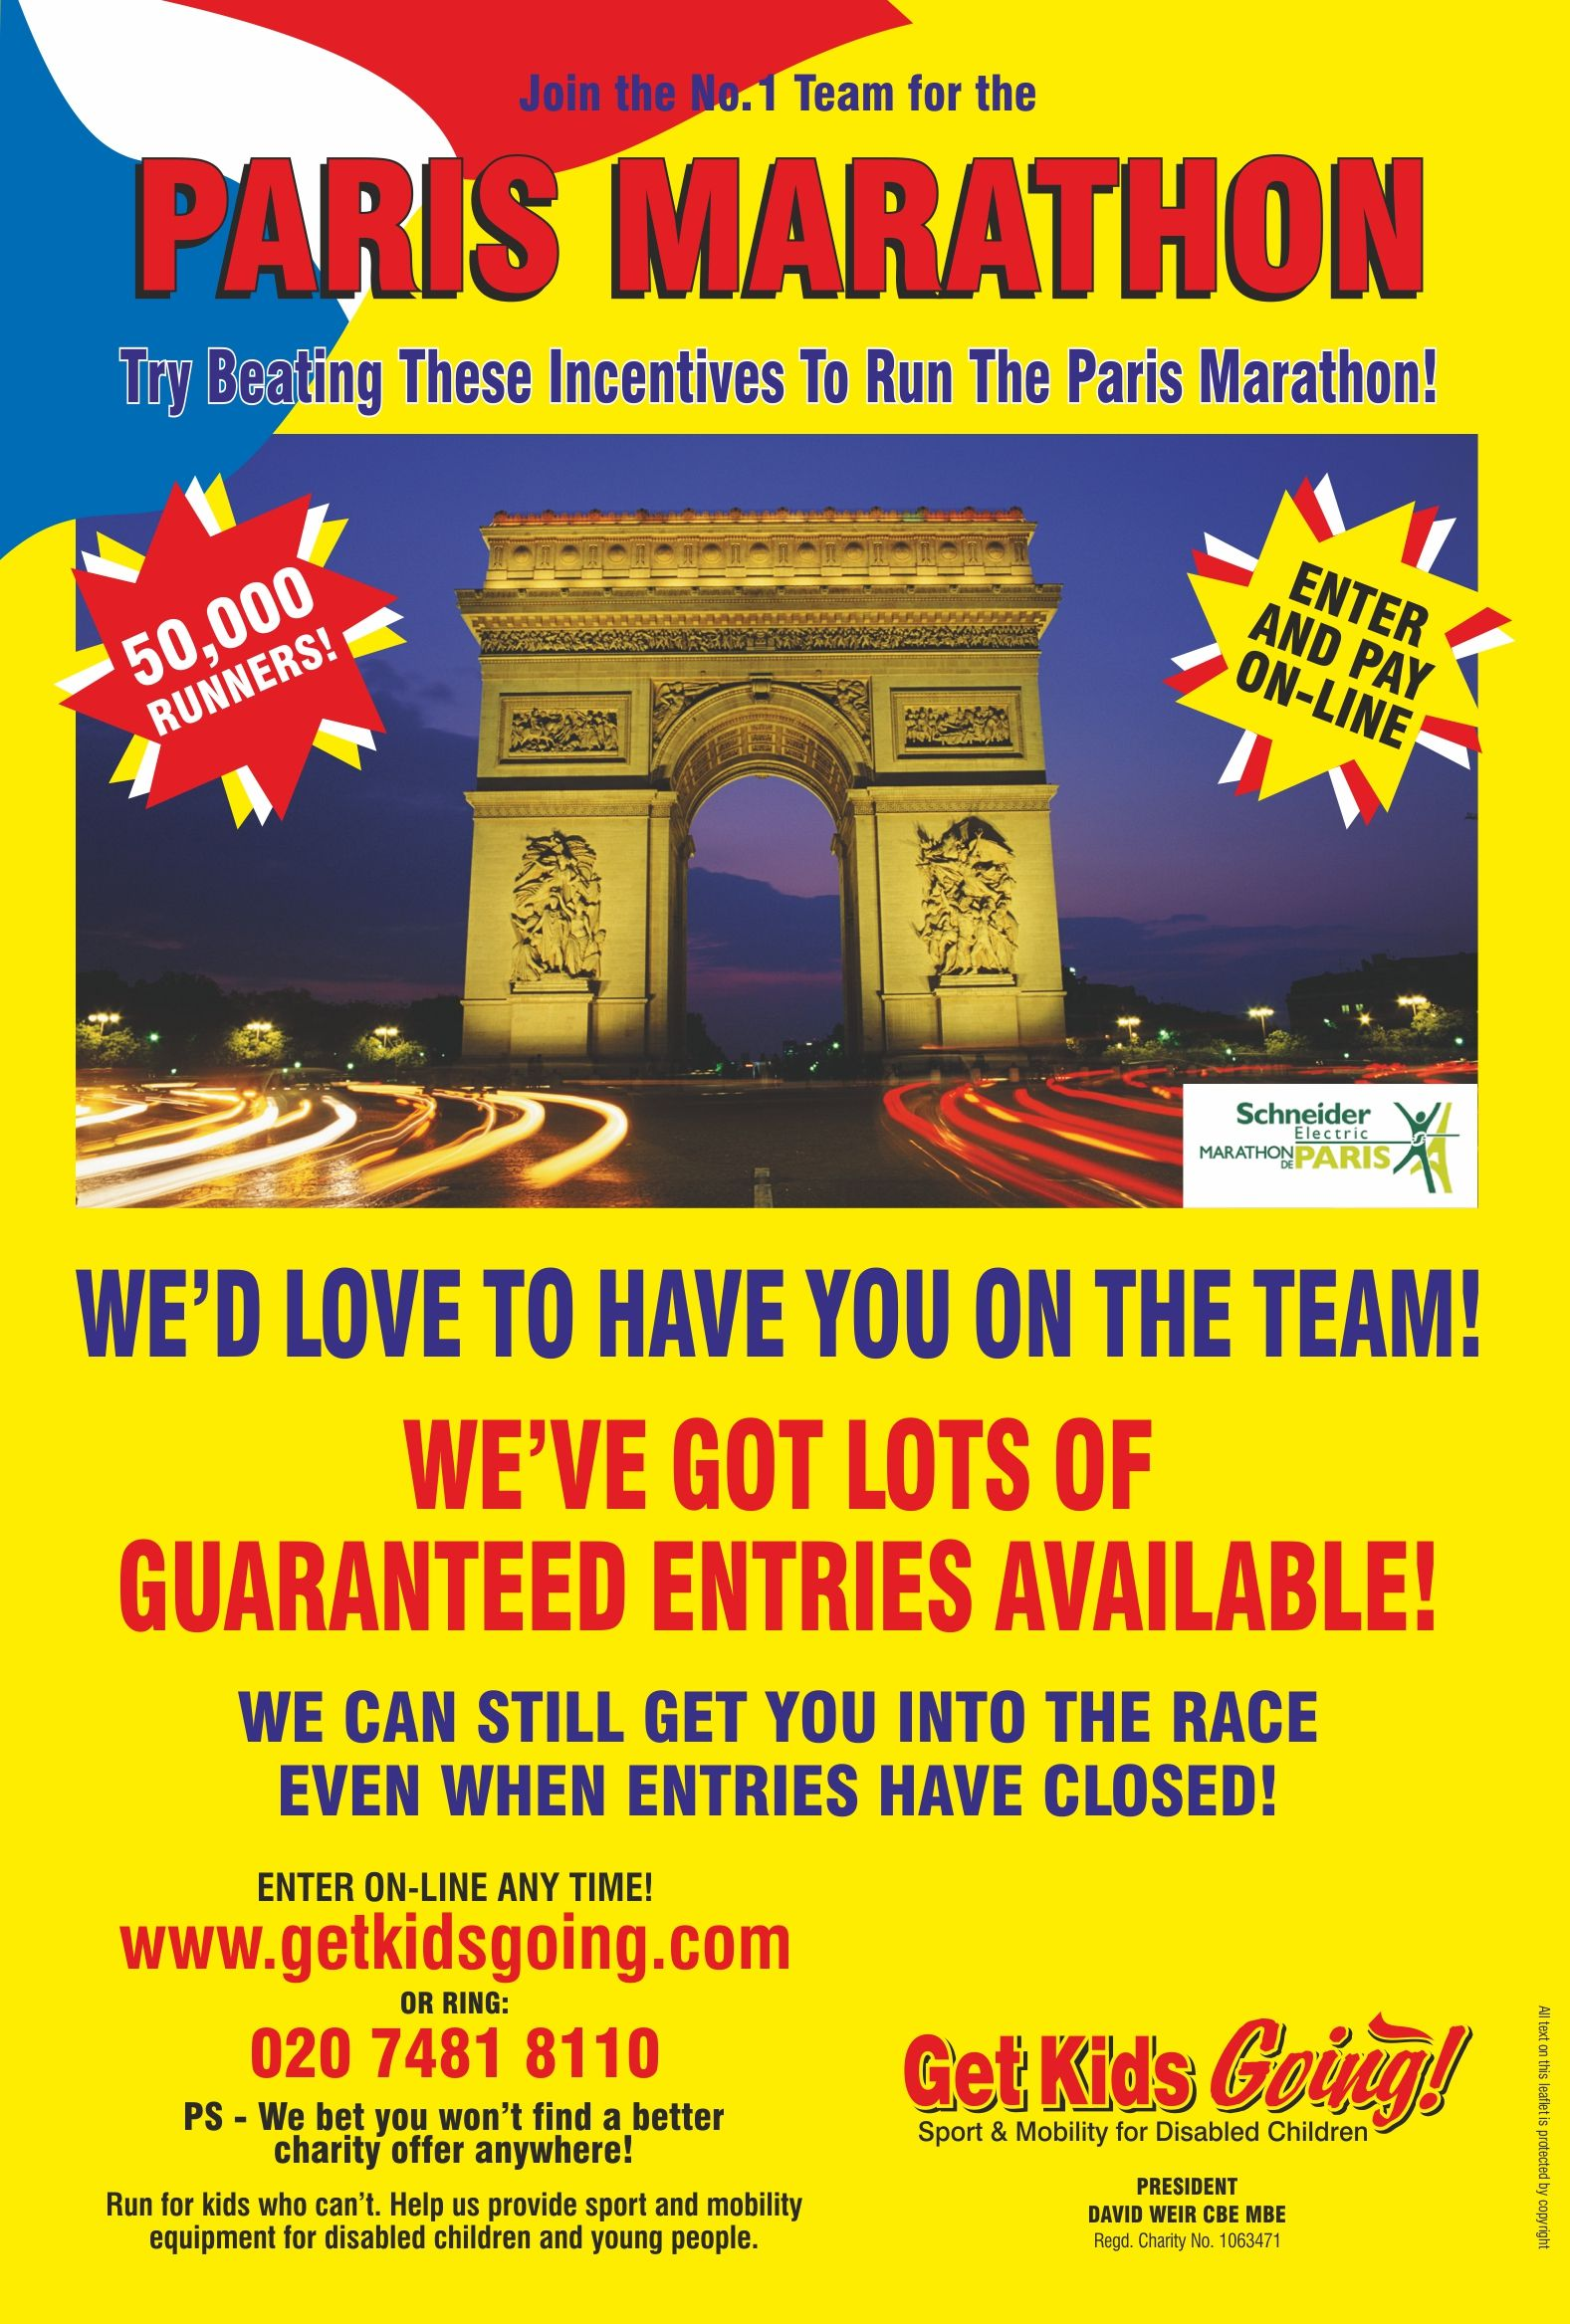 We have many guaranteed entry places available for the Paris Marathon 2016 just waiting to be filled!  Get Kids Going! is a unique, national charity that gives disabled children and young people the wonderful opportunity of participating in sport. Help us to Turn their Dreams Into Reality